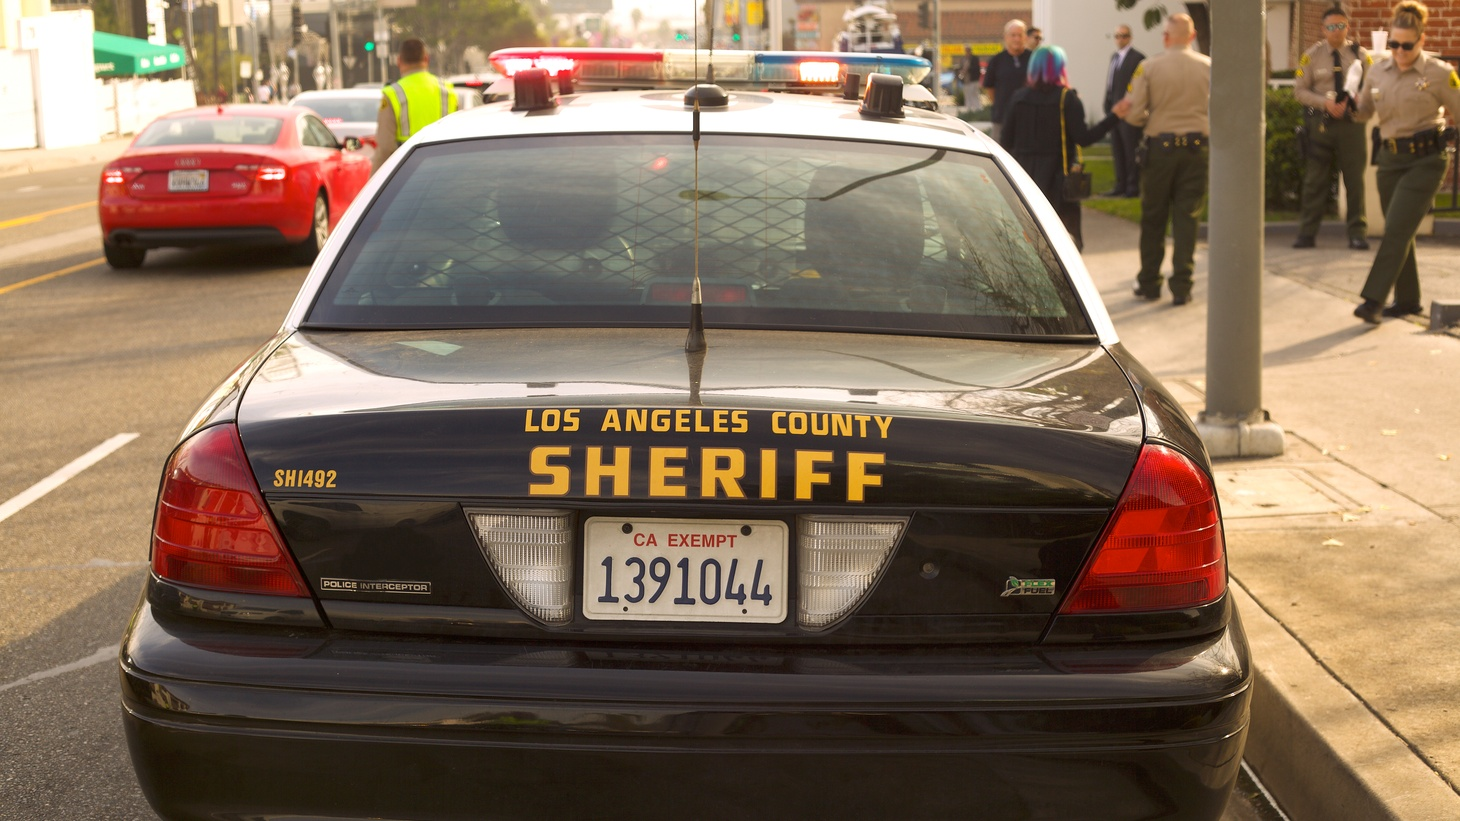 Los Angeles County Sheriff's police car.